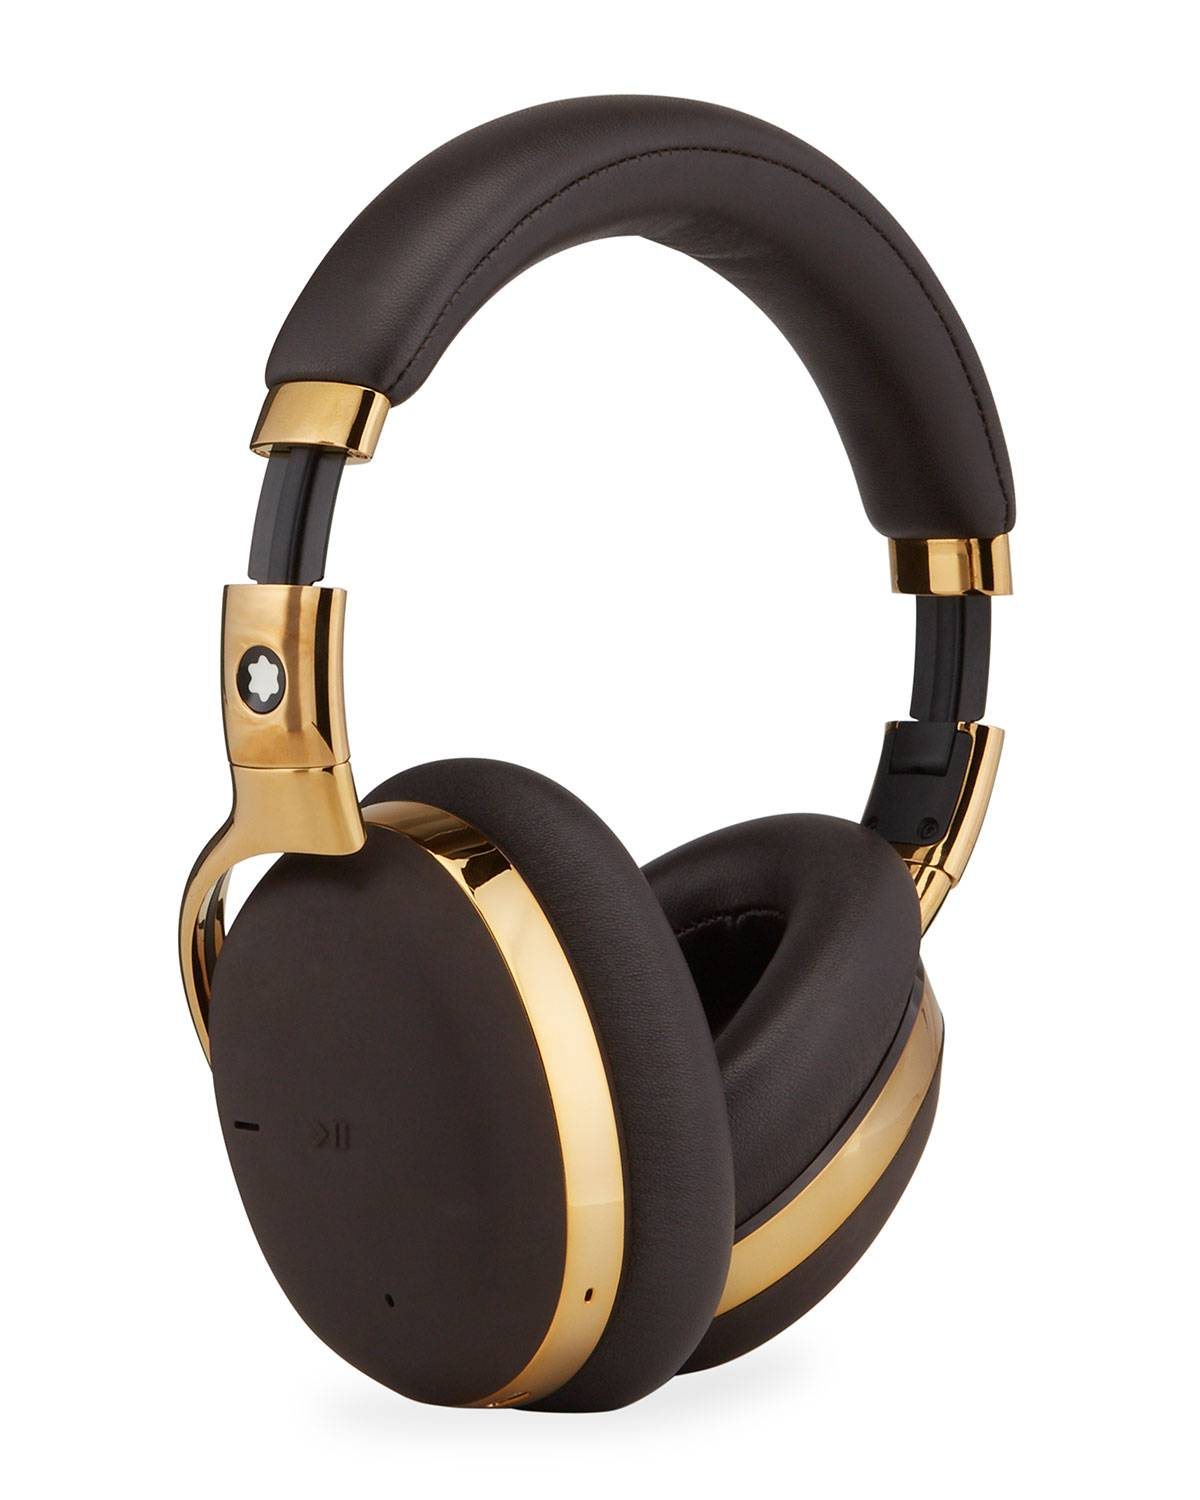 Montblanc MB 01 Over-Ear Headphones, Gold/Brown